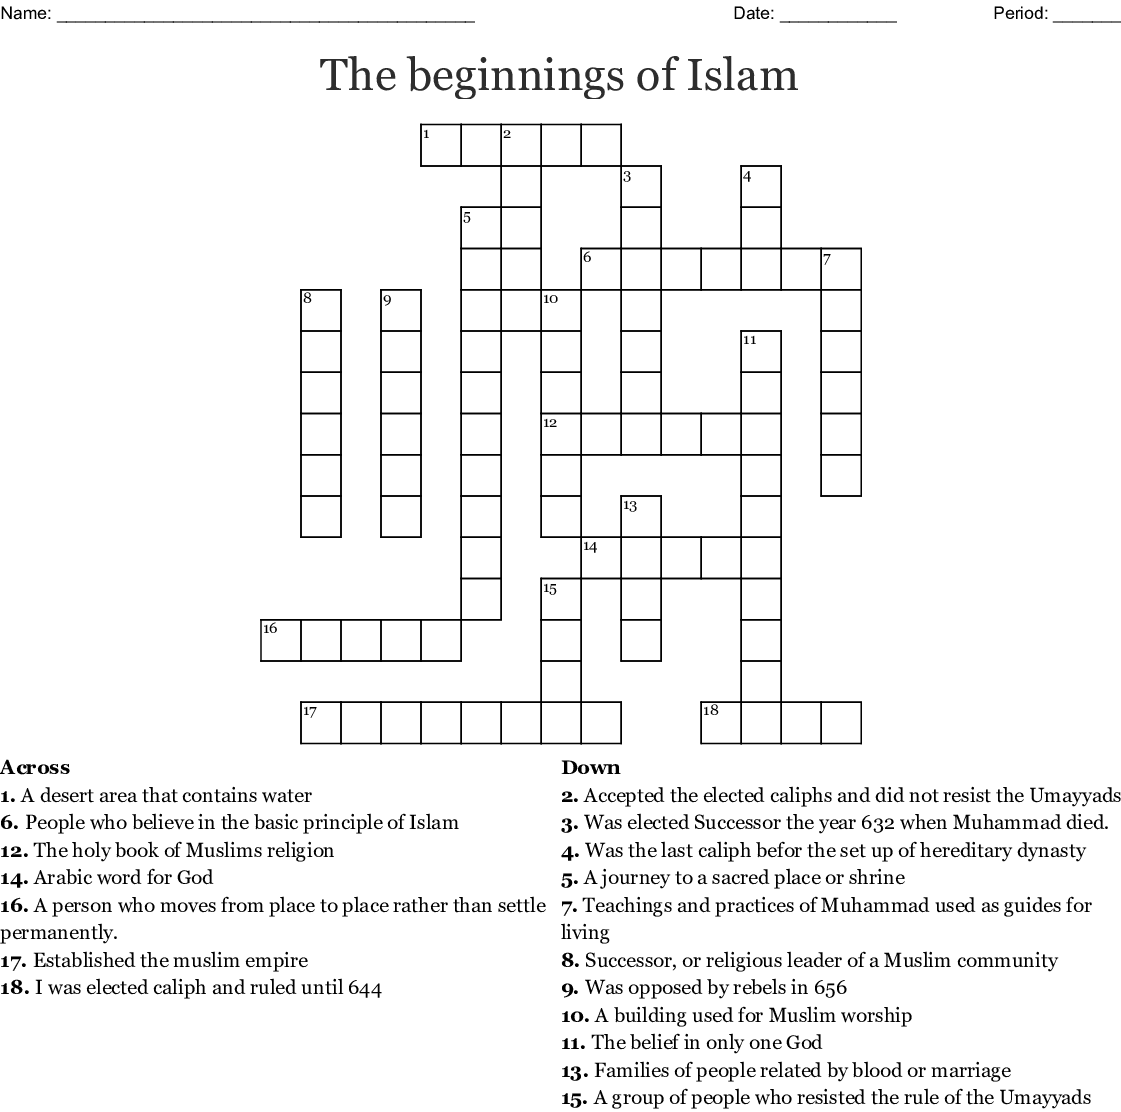 The beginnings of Islam Crossword - WordMint